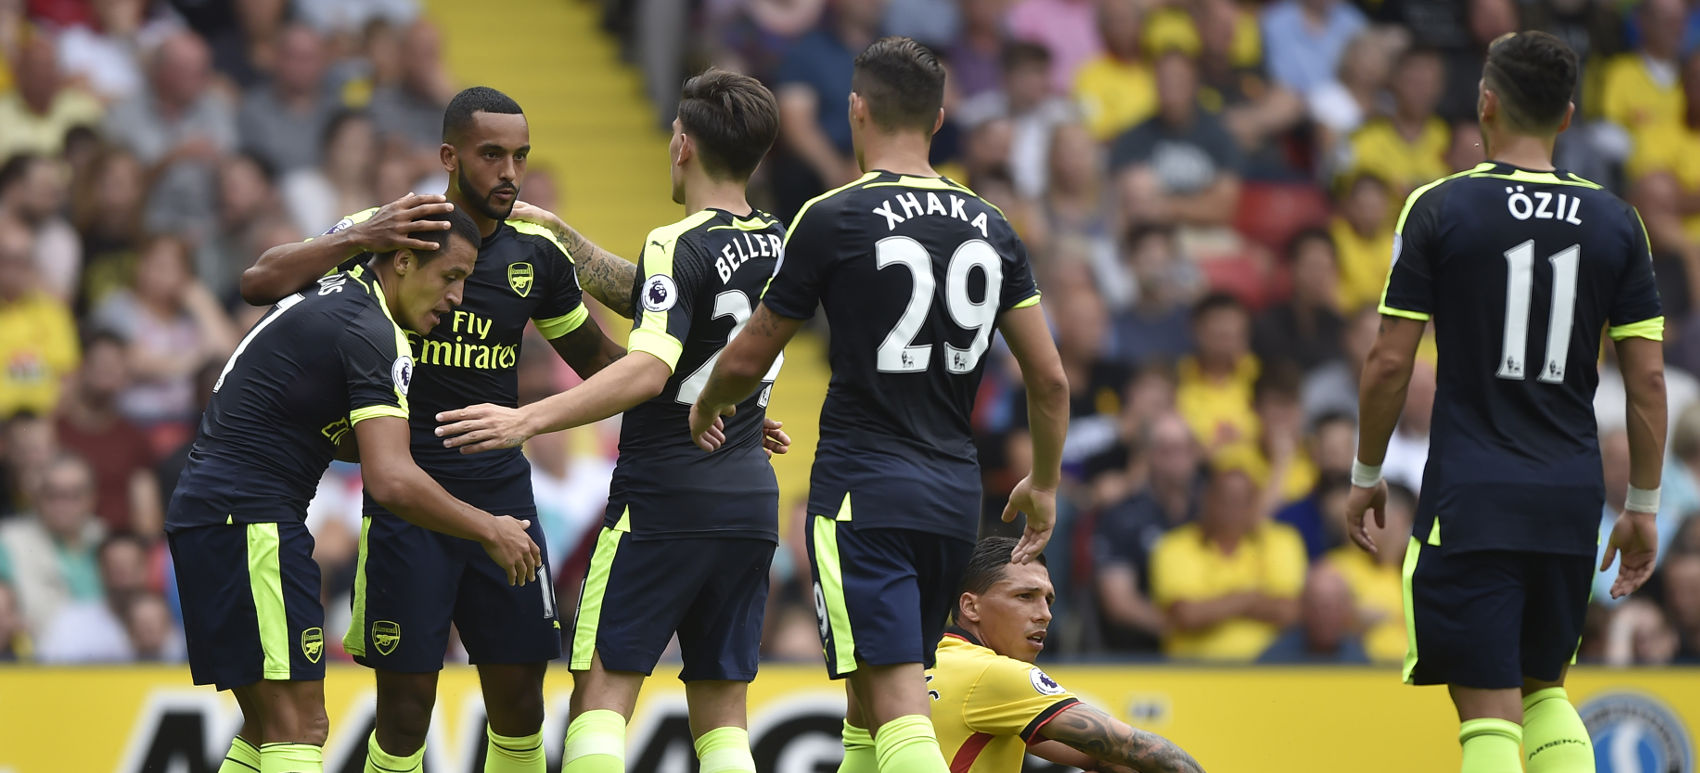 Frisking the Fixtures – Gameweek 5 – The Strong